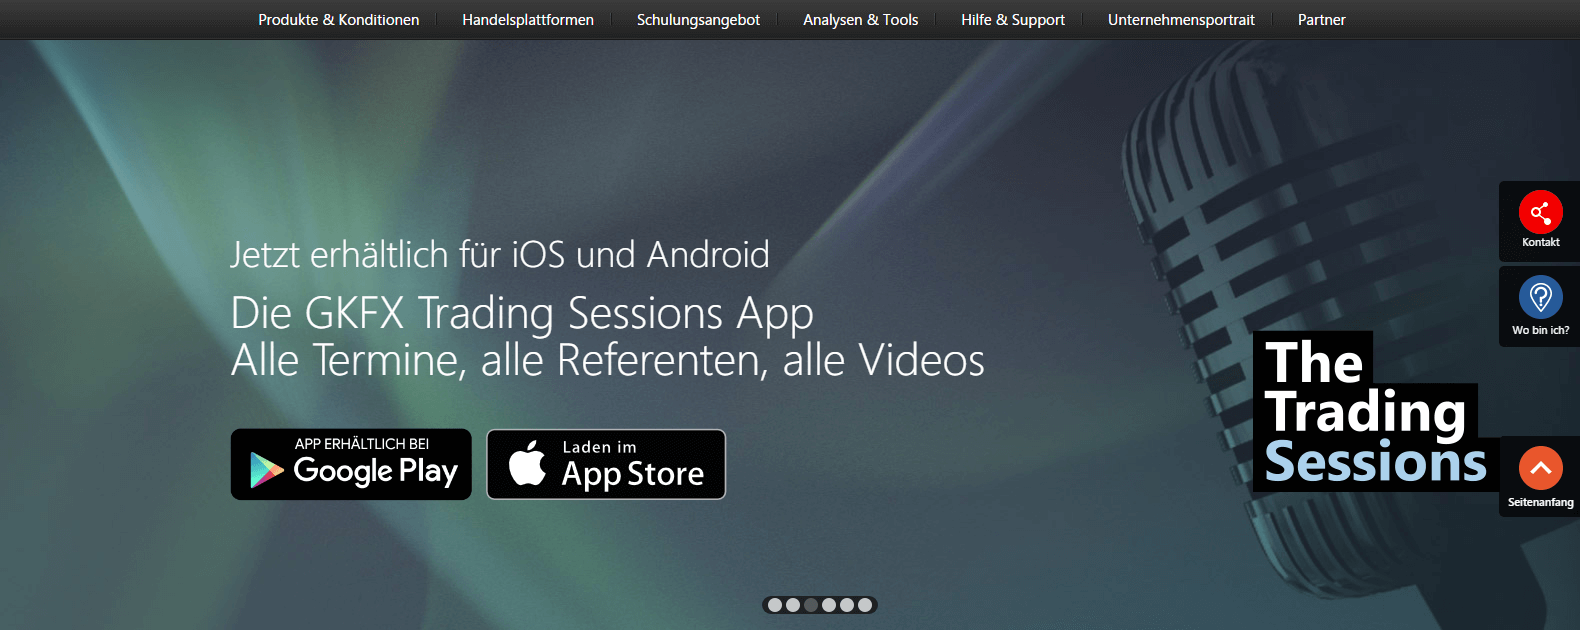 Die GKFX Trading Sessions App